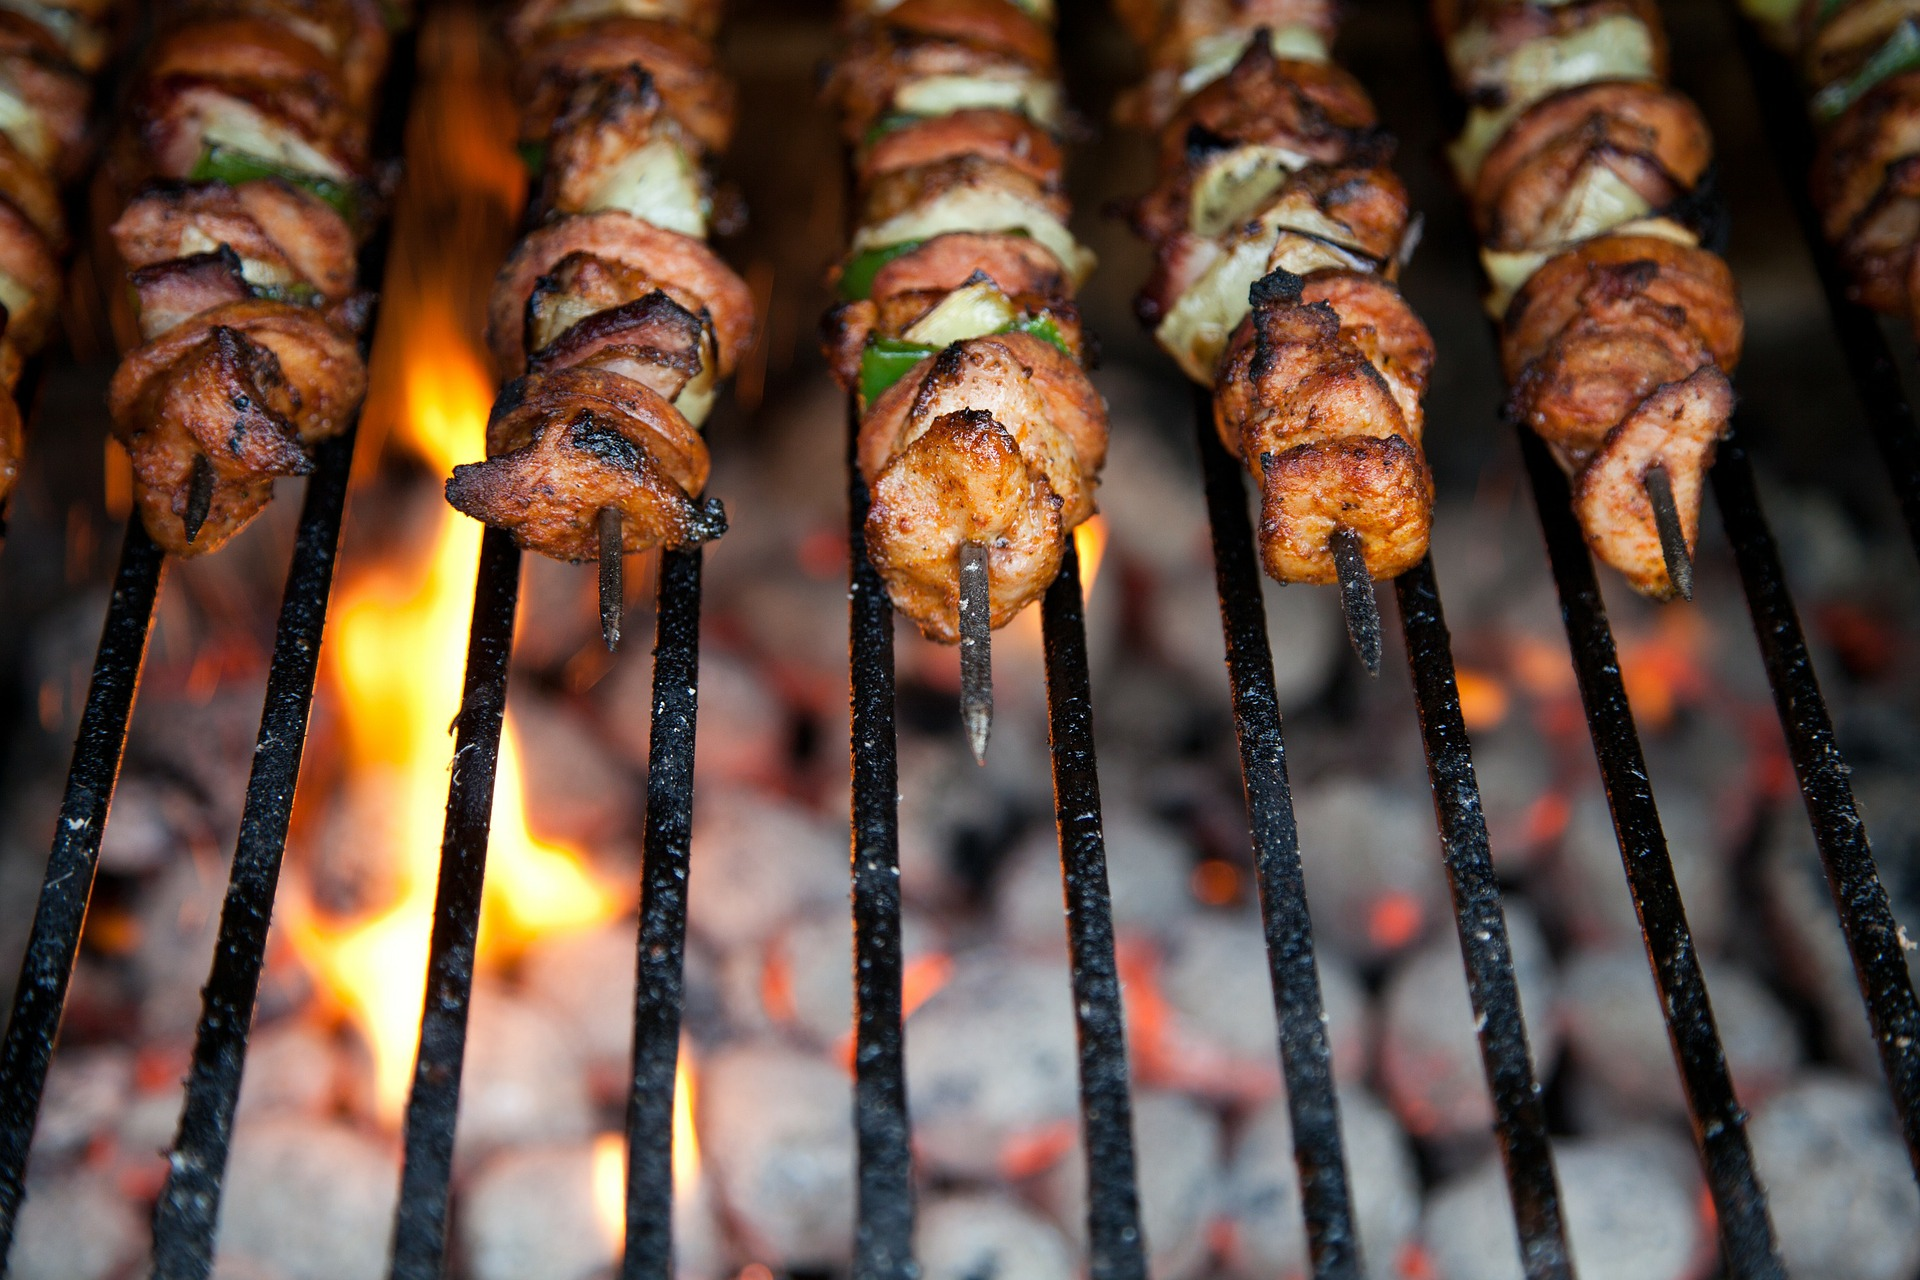 Chicken kebobs on a coal-fired grill